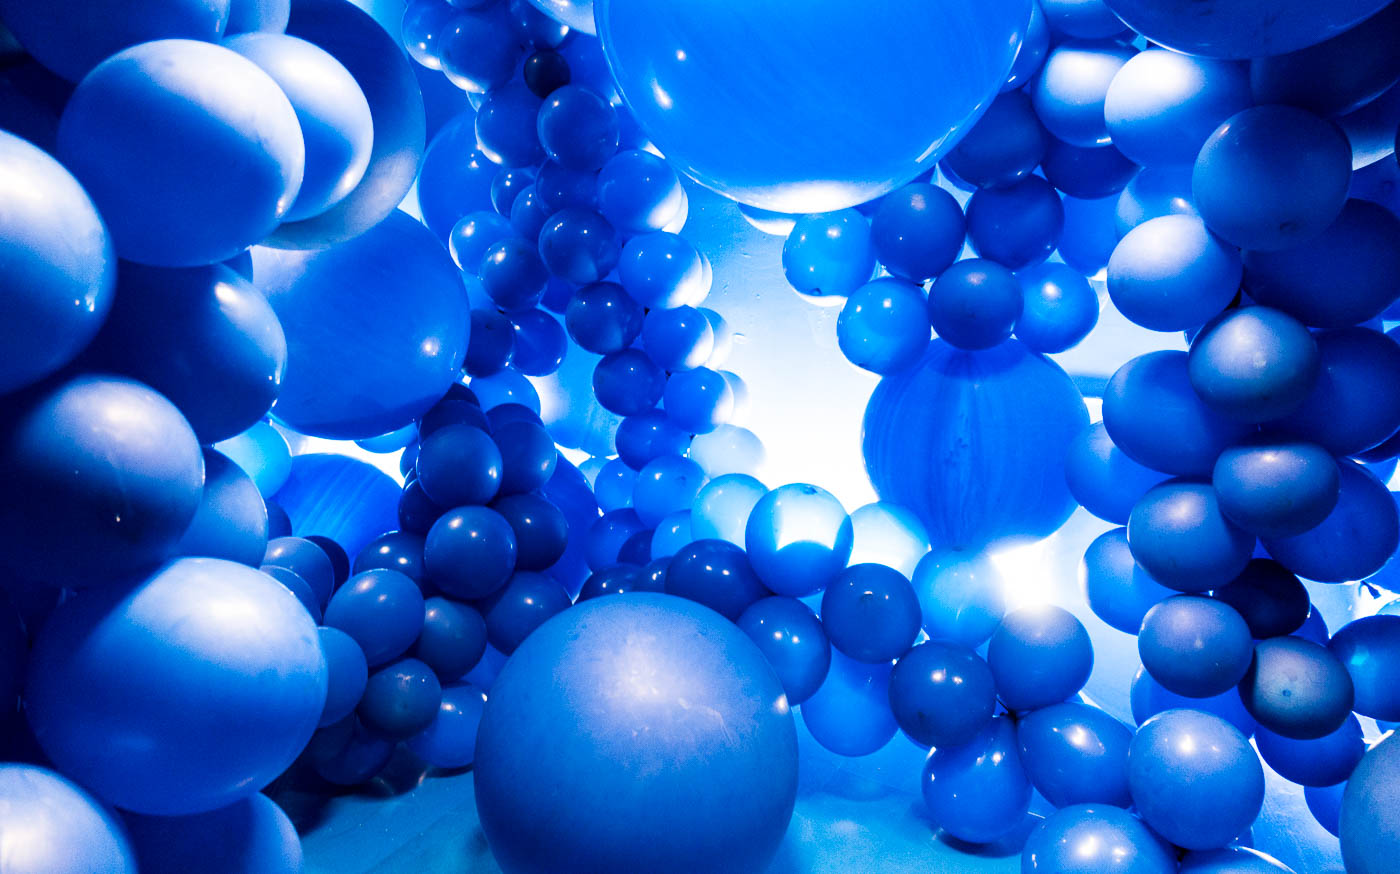 Color Factory SF - Geronimo Balloon Room | The Chic Diary.jpg